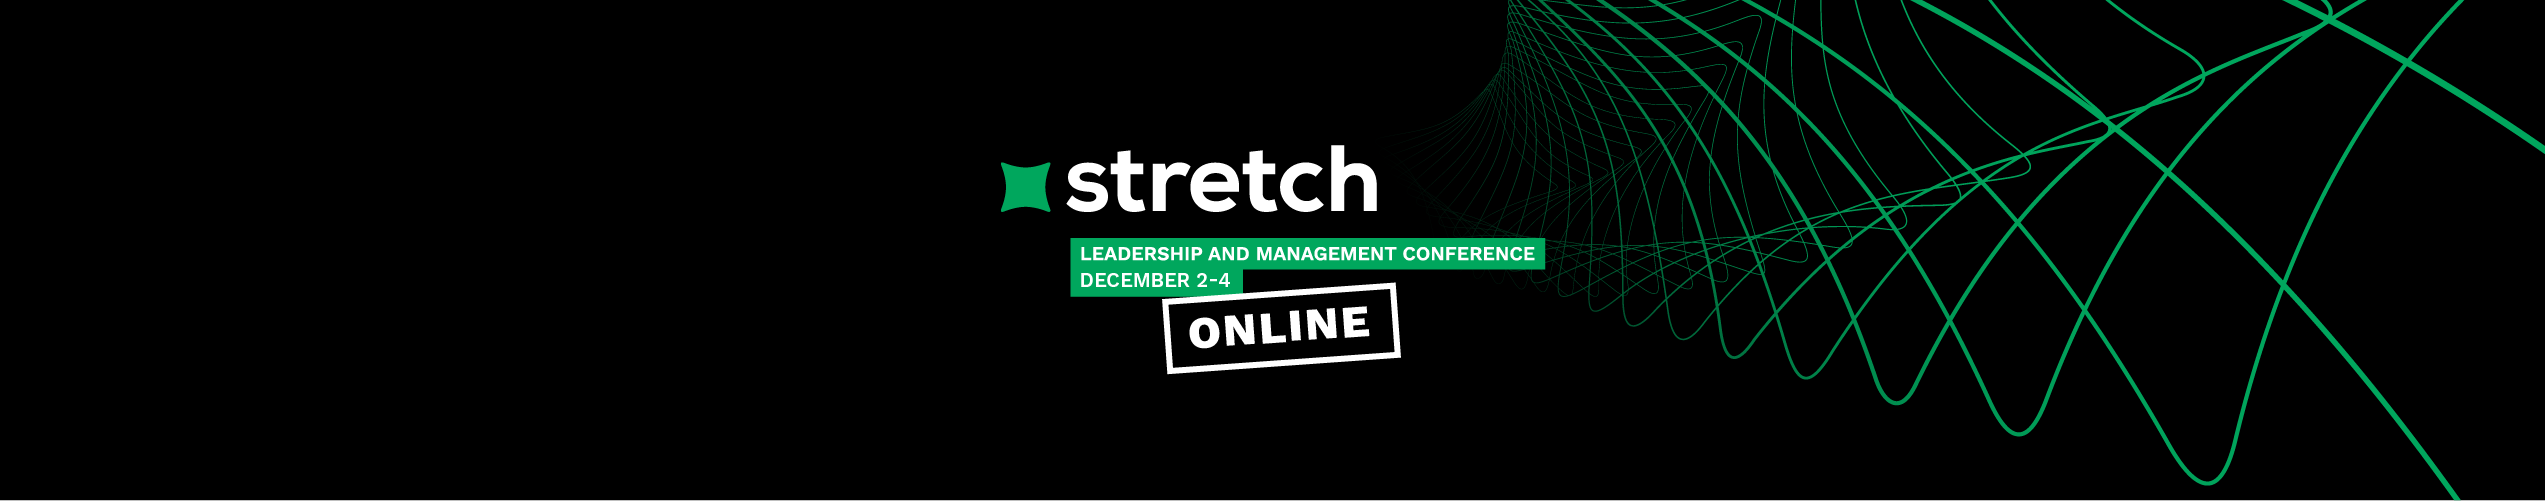 CraftHub - Stretch Online Conference